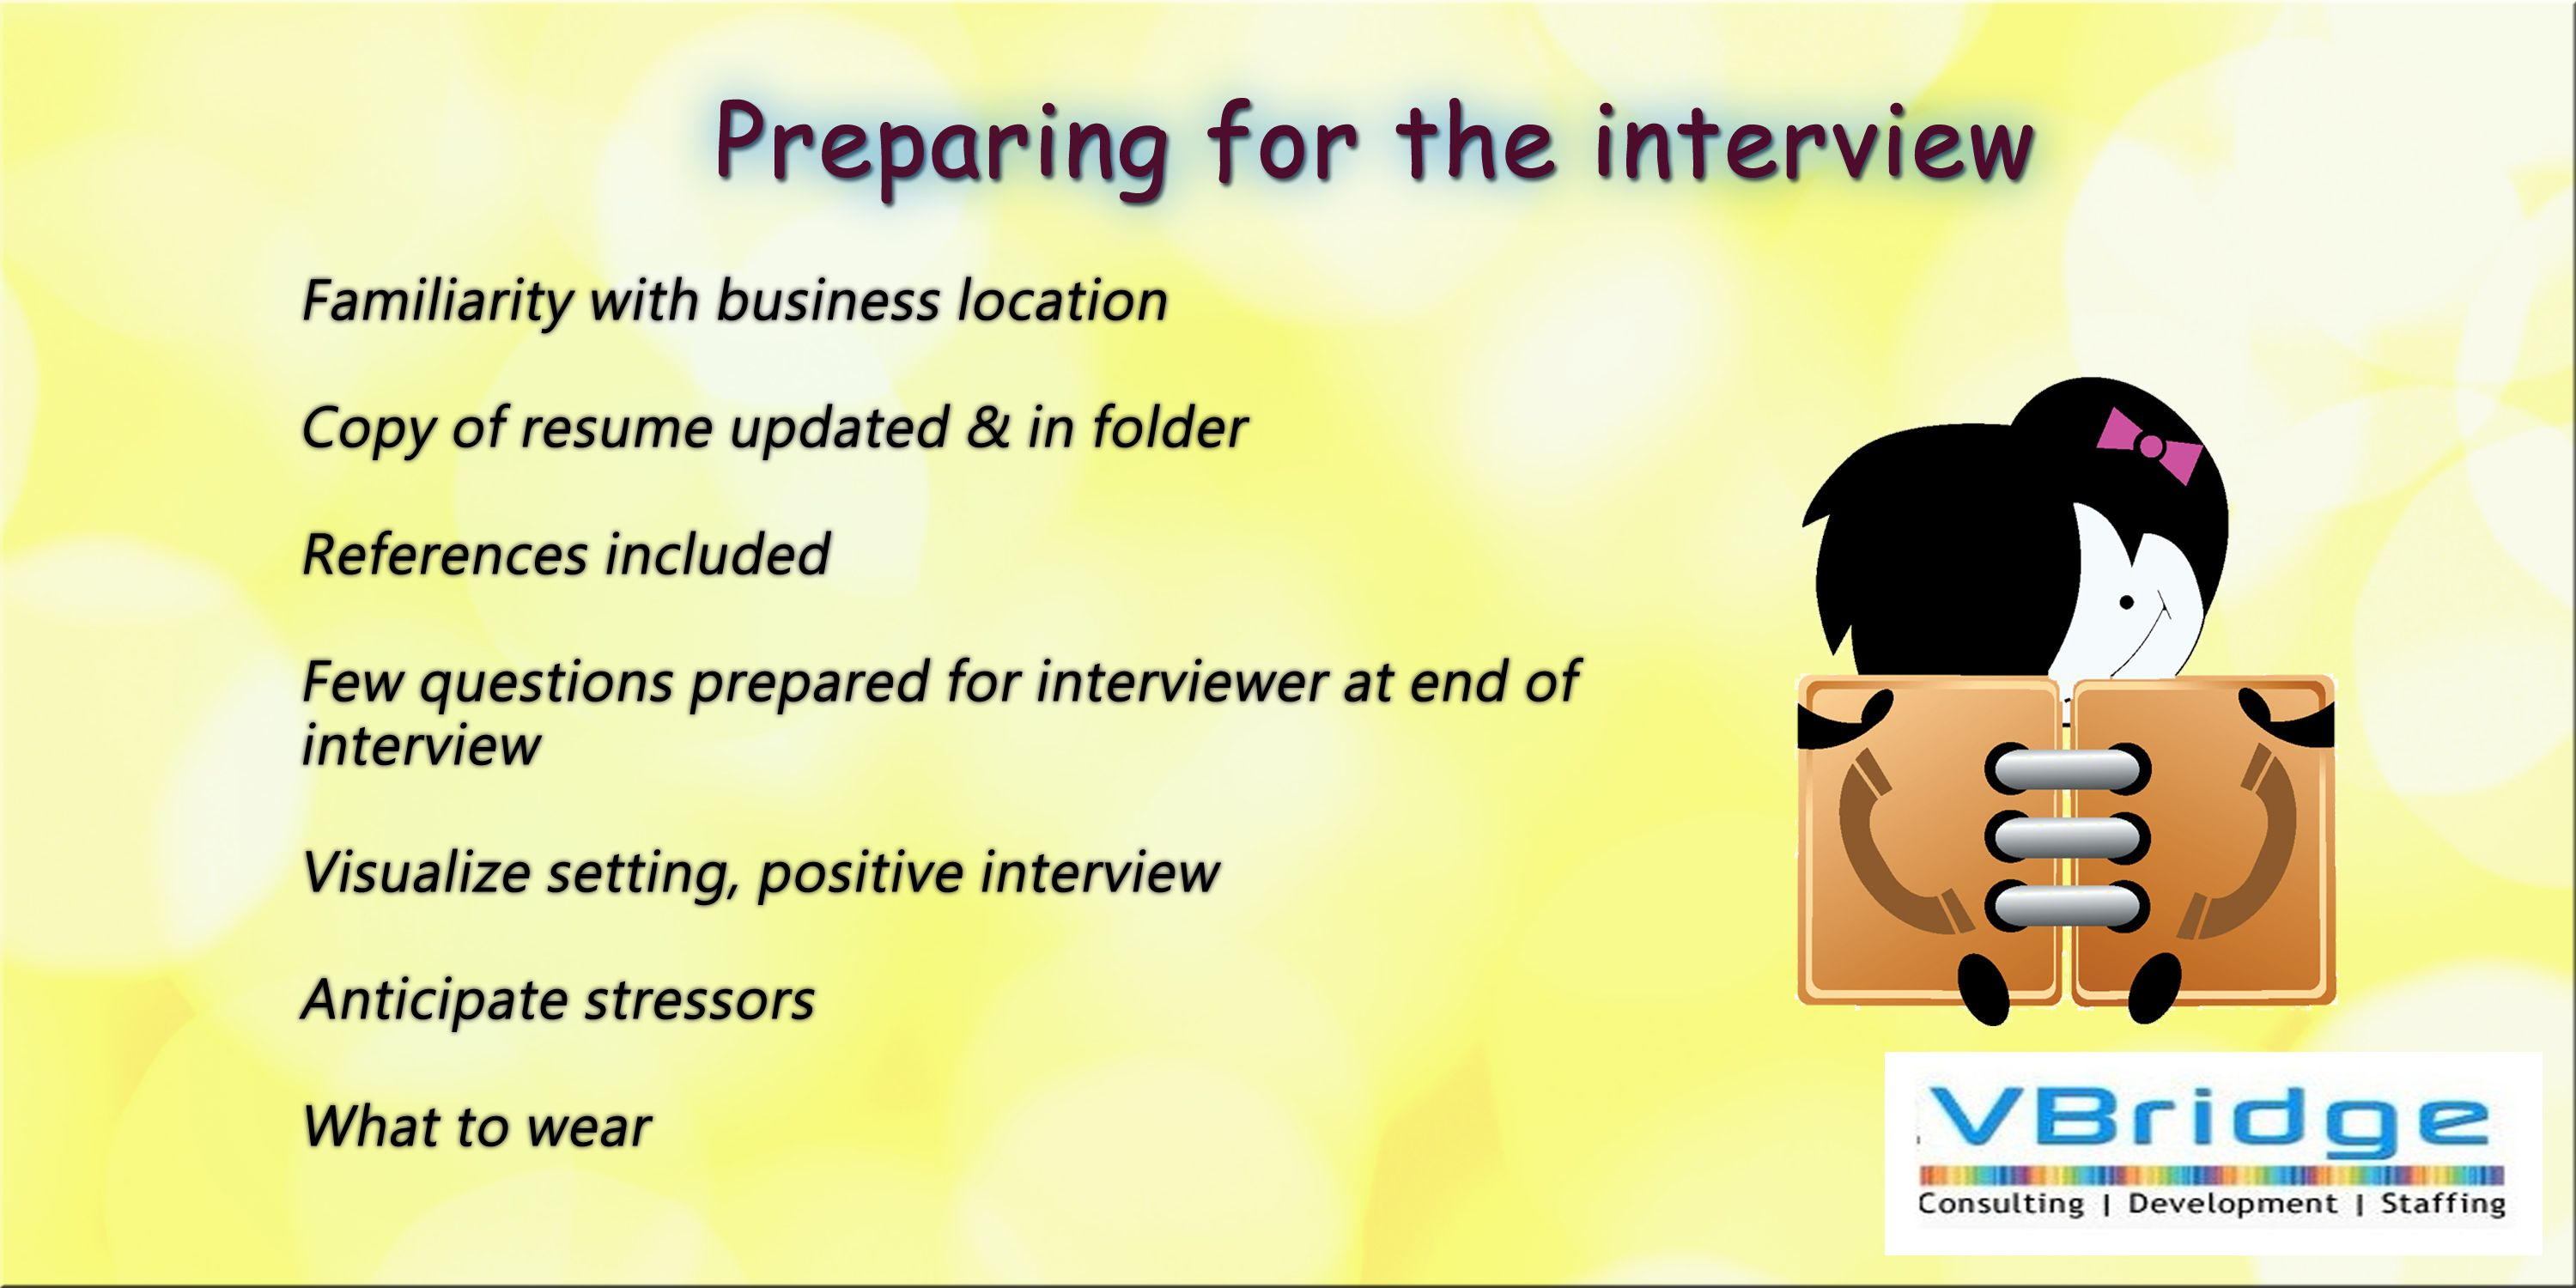 Copy A Resume Preparing For The Interview Familiarity With Business Location Copy .